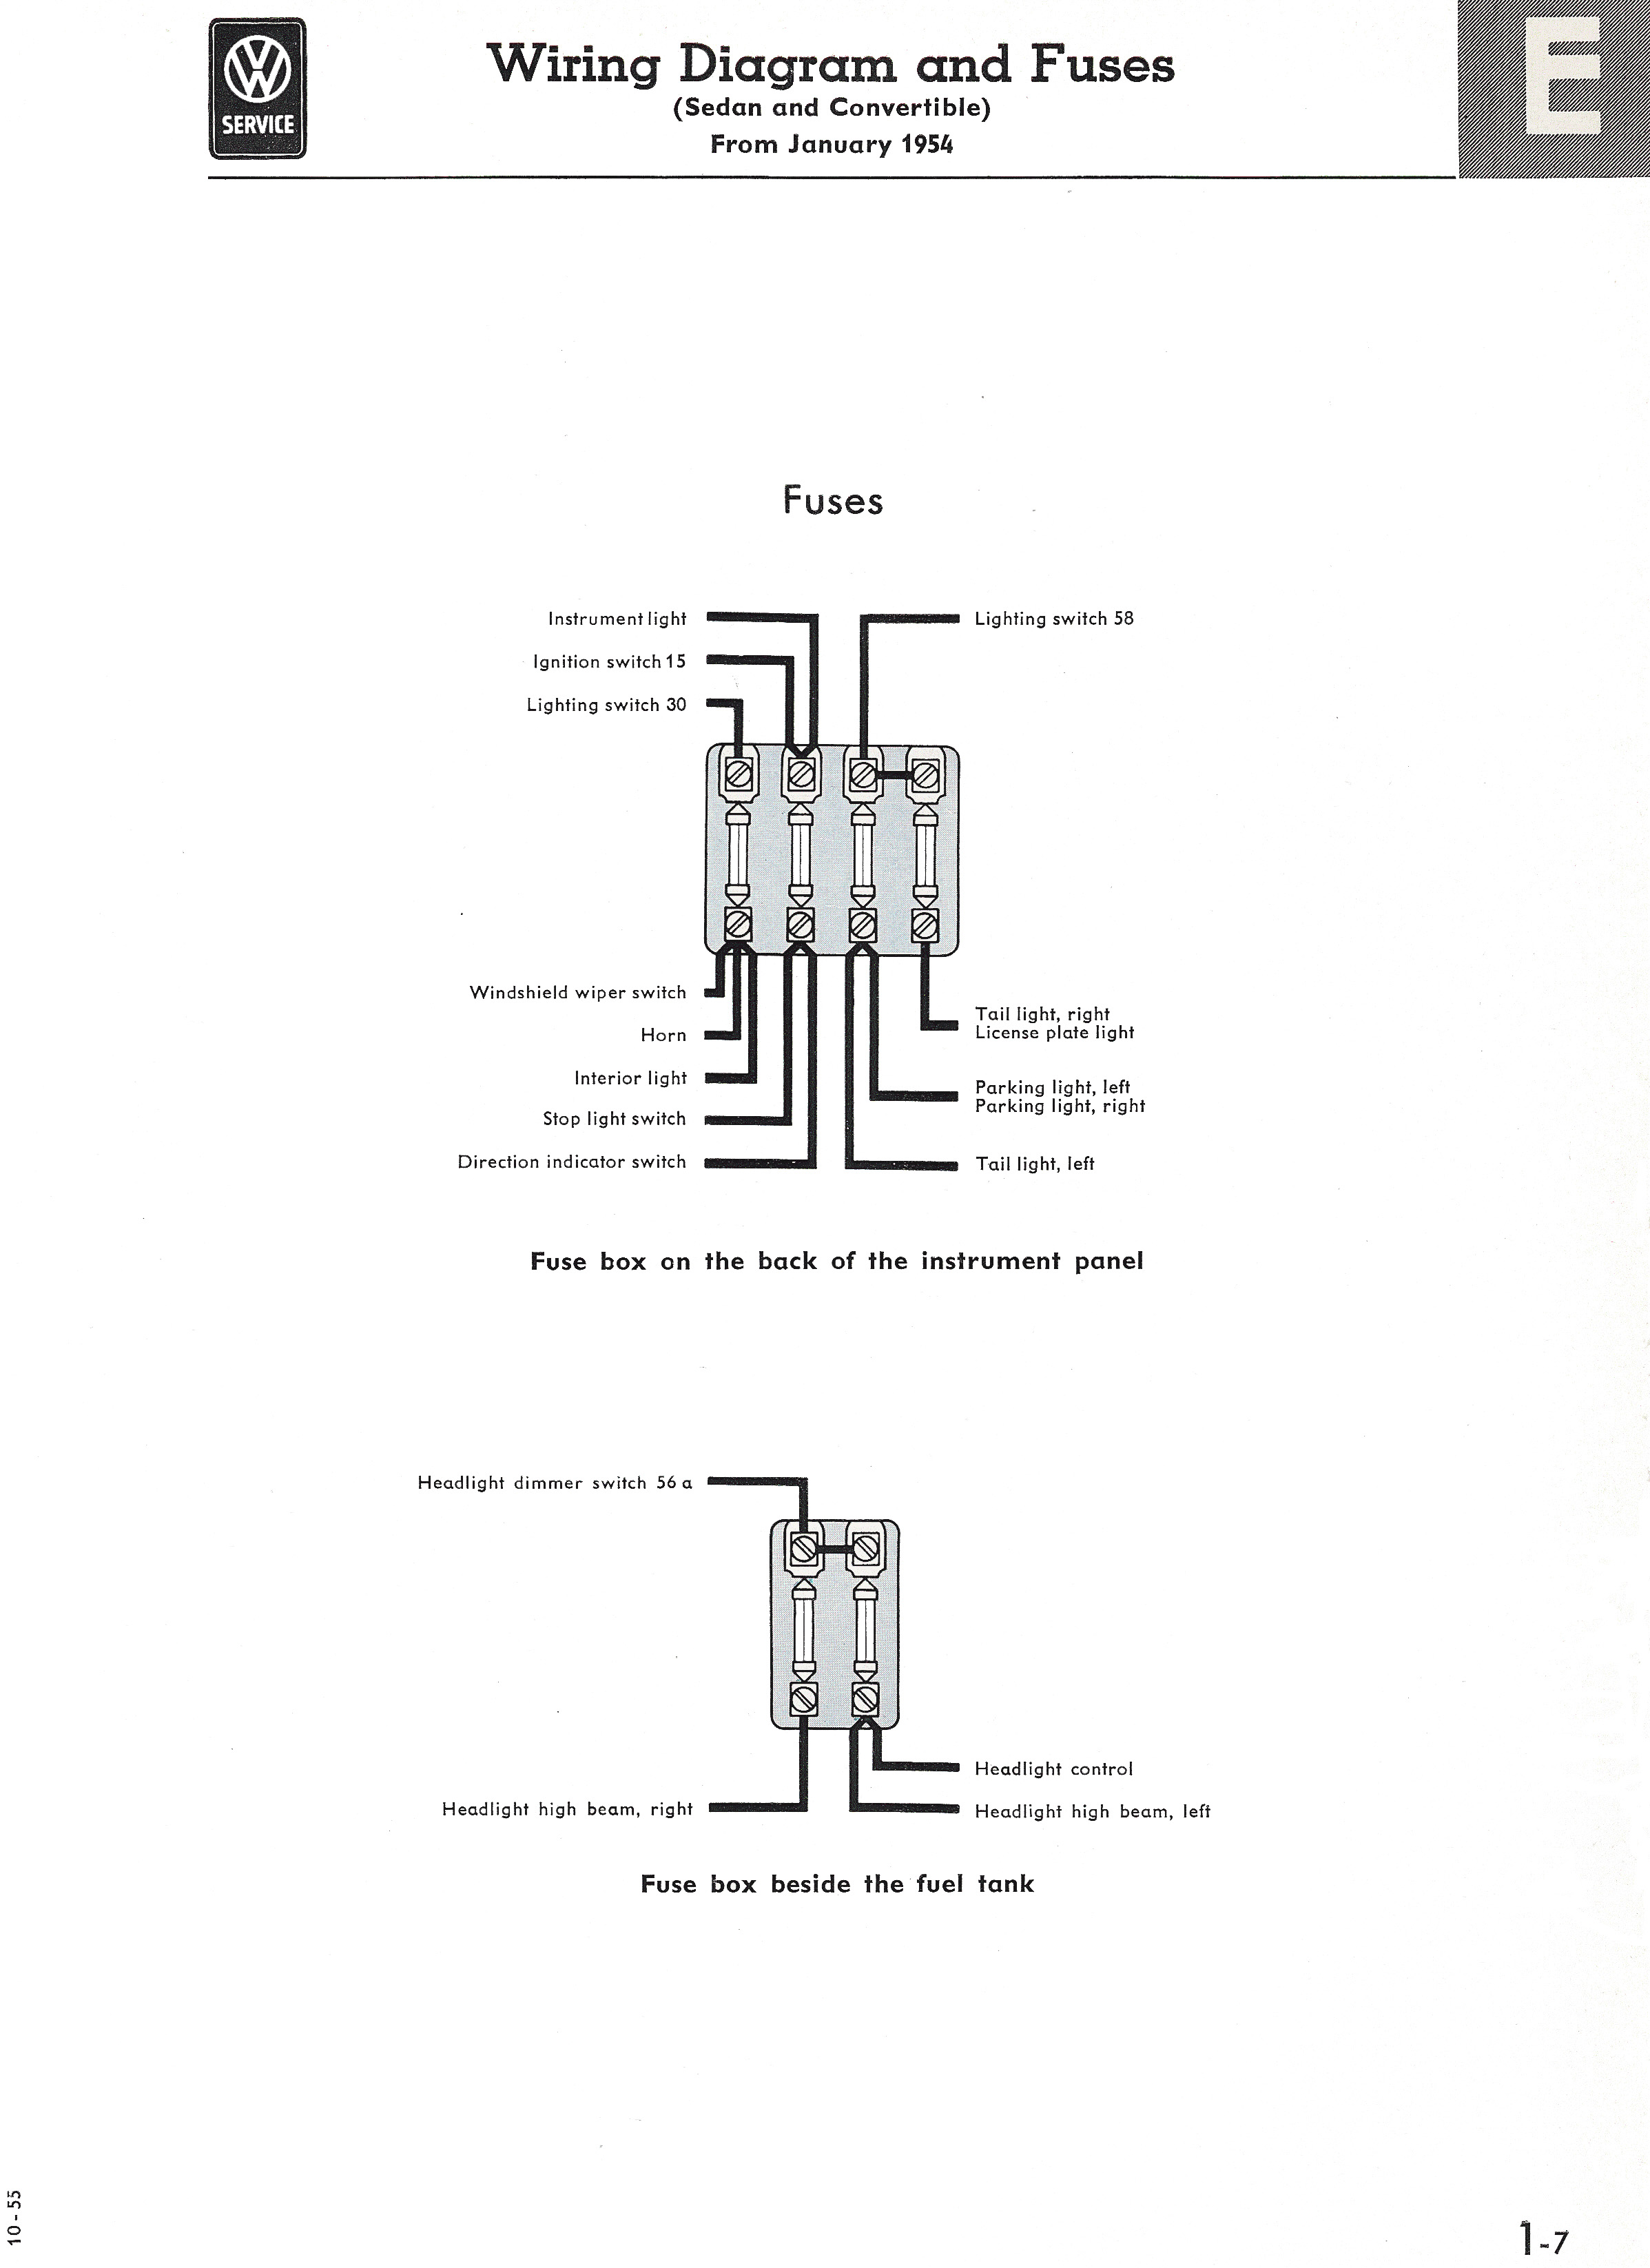 Type 1 Wiring Diagrams Volkswagen Engine